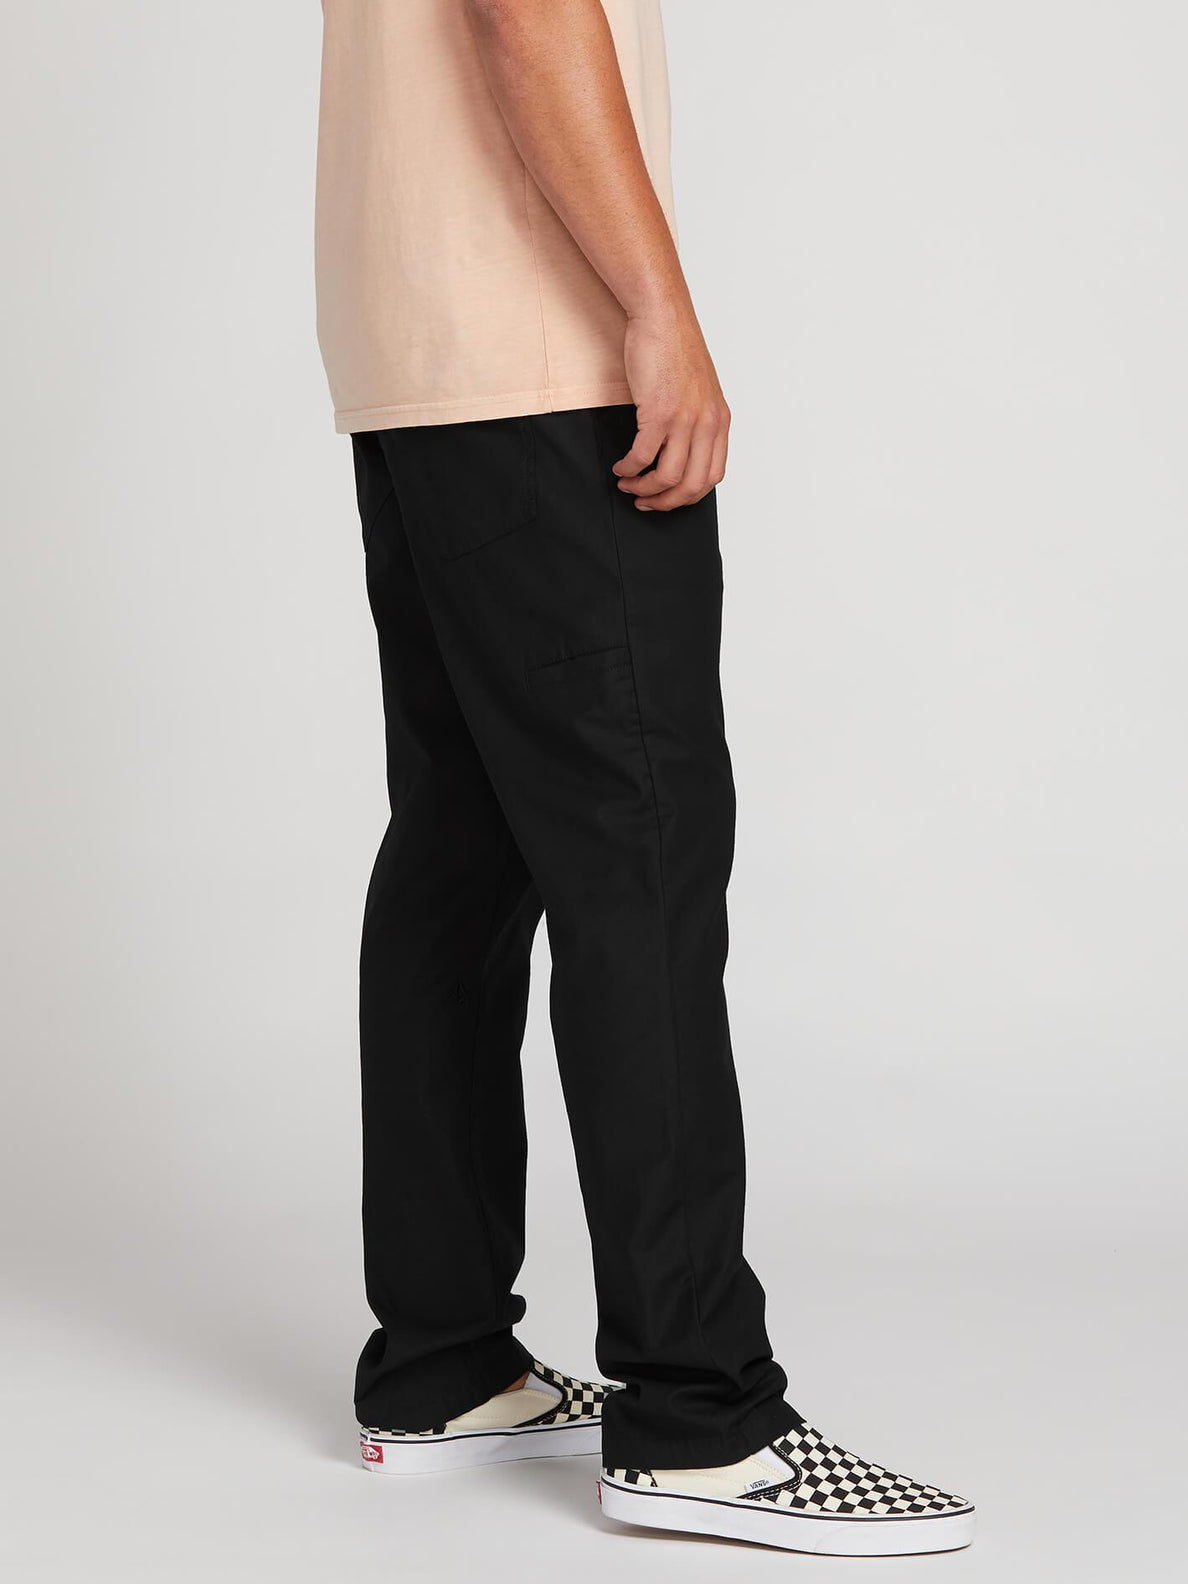 RISER COMFORT CHINO (A1221900_BLK) [3]